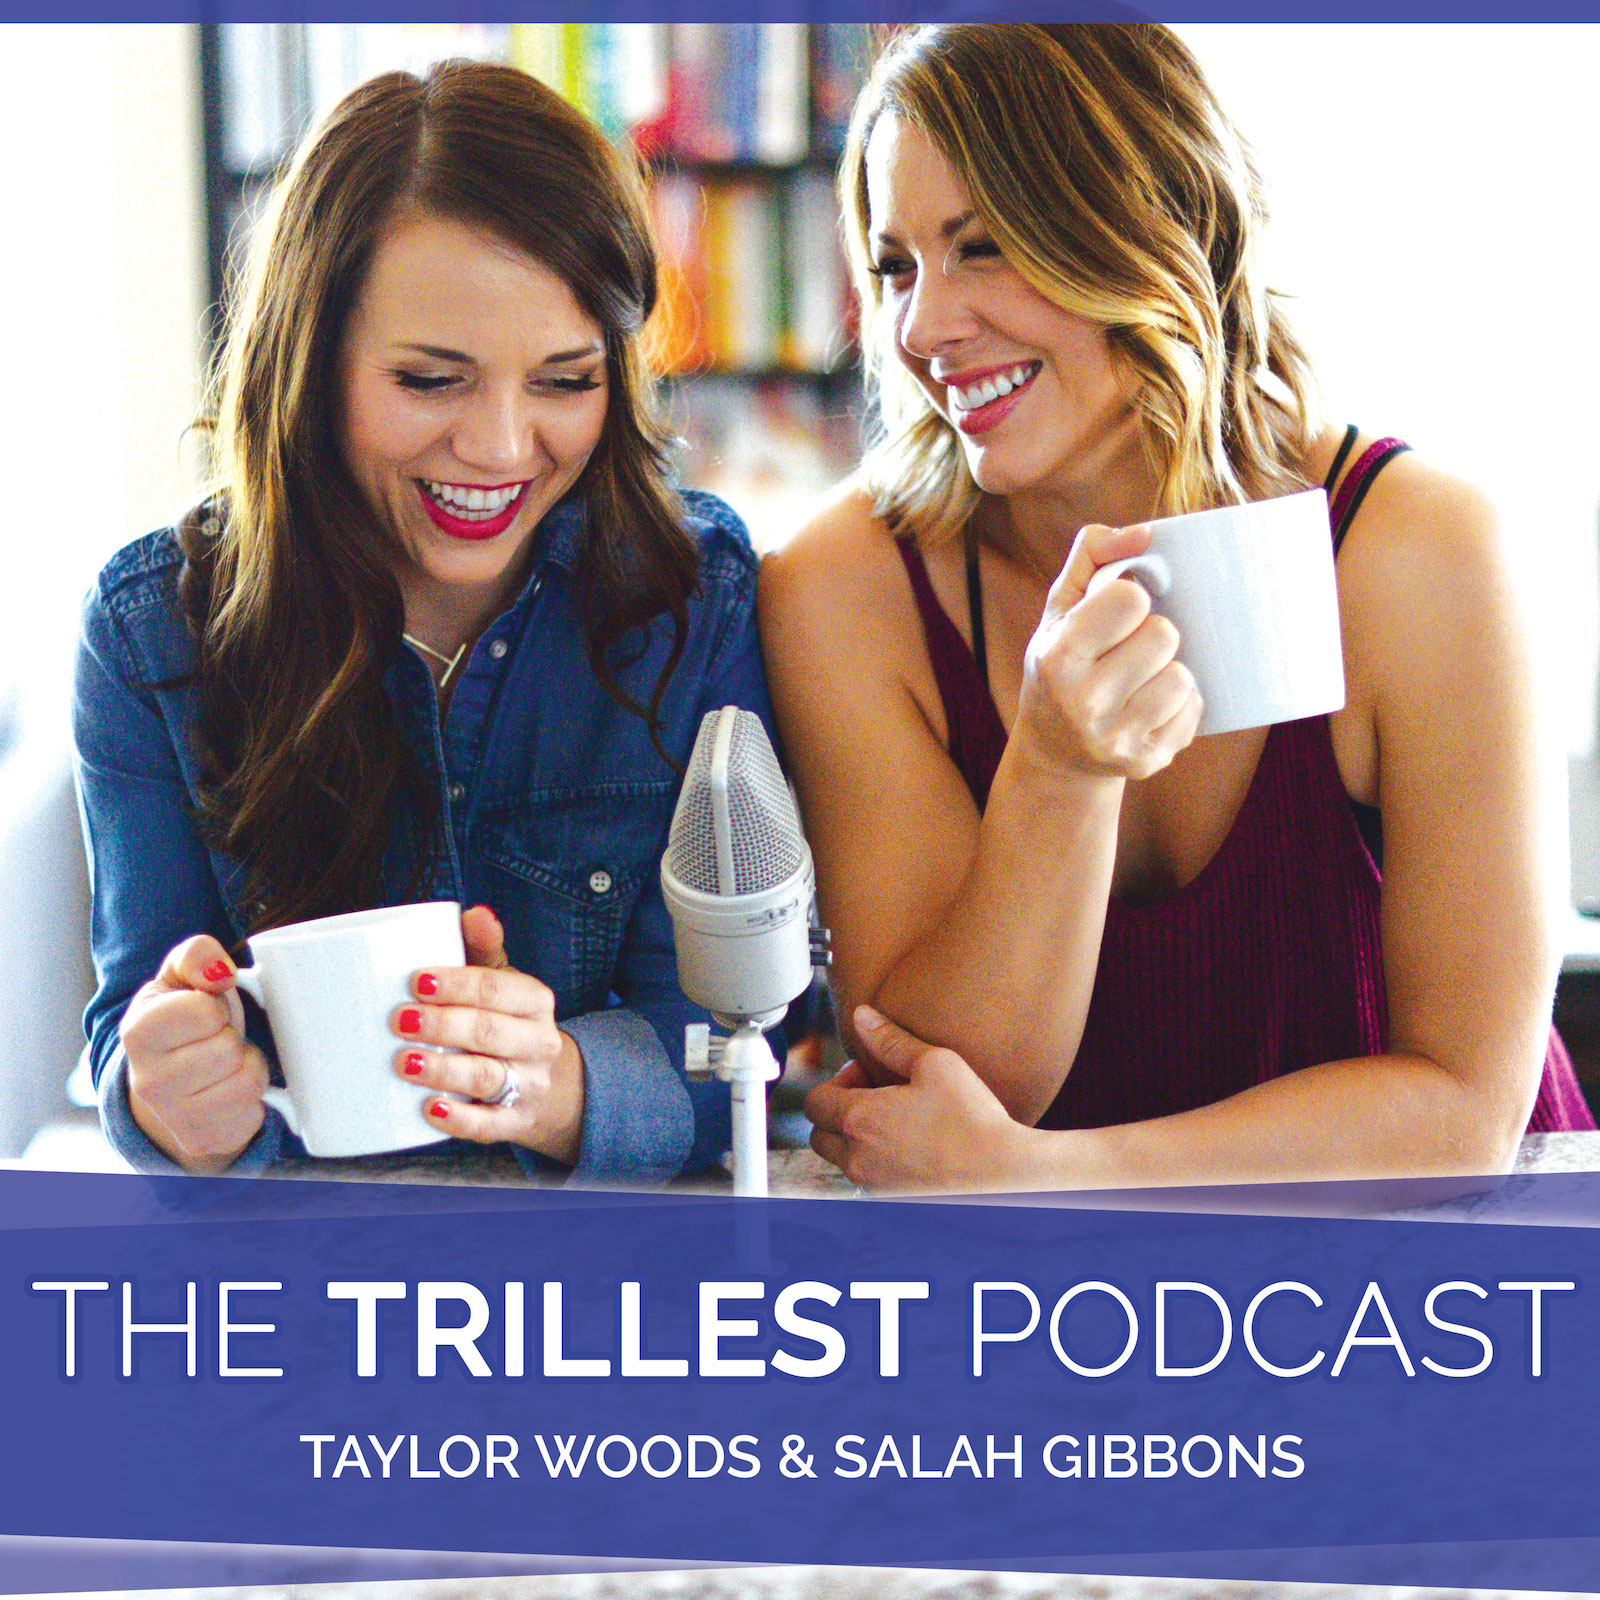 The Trillest Podcast show art